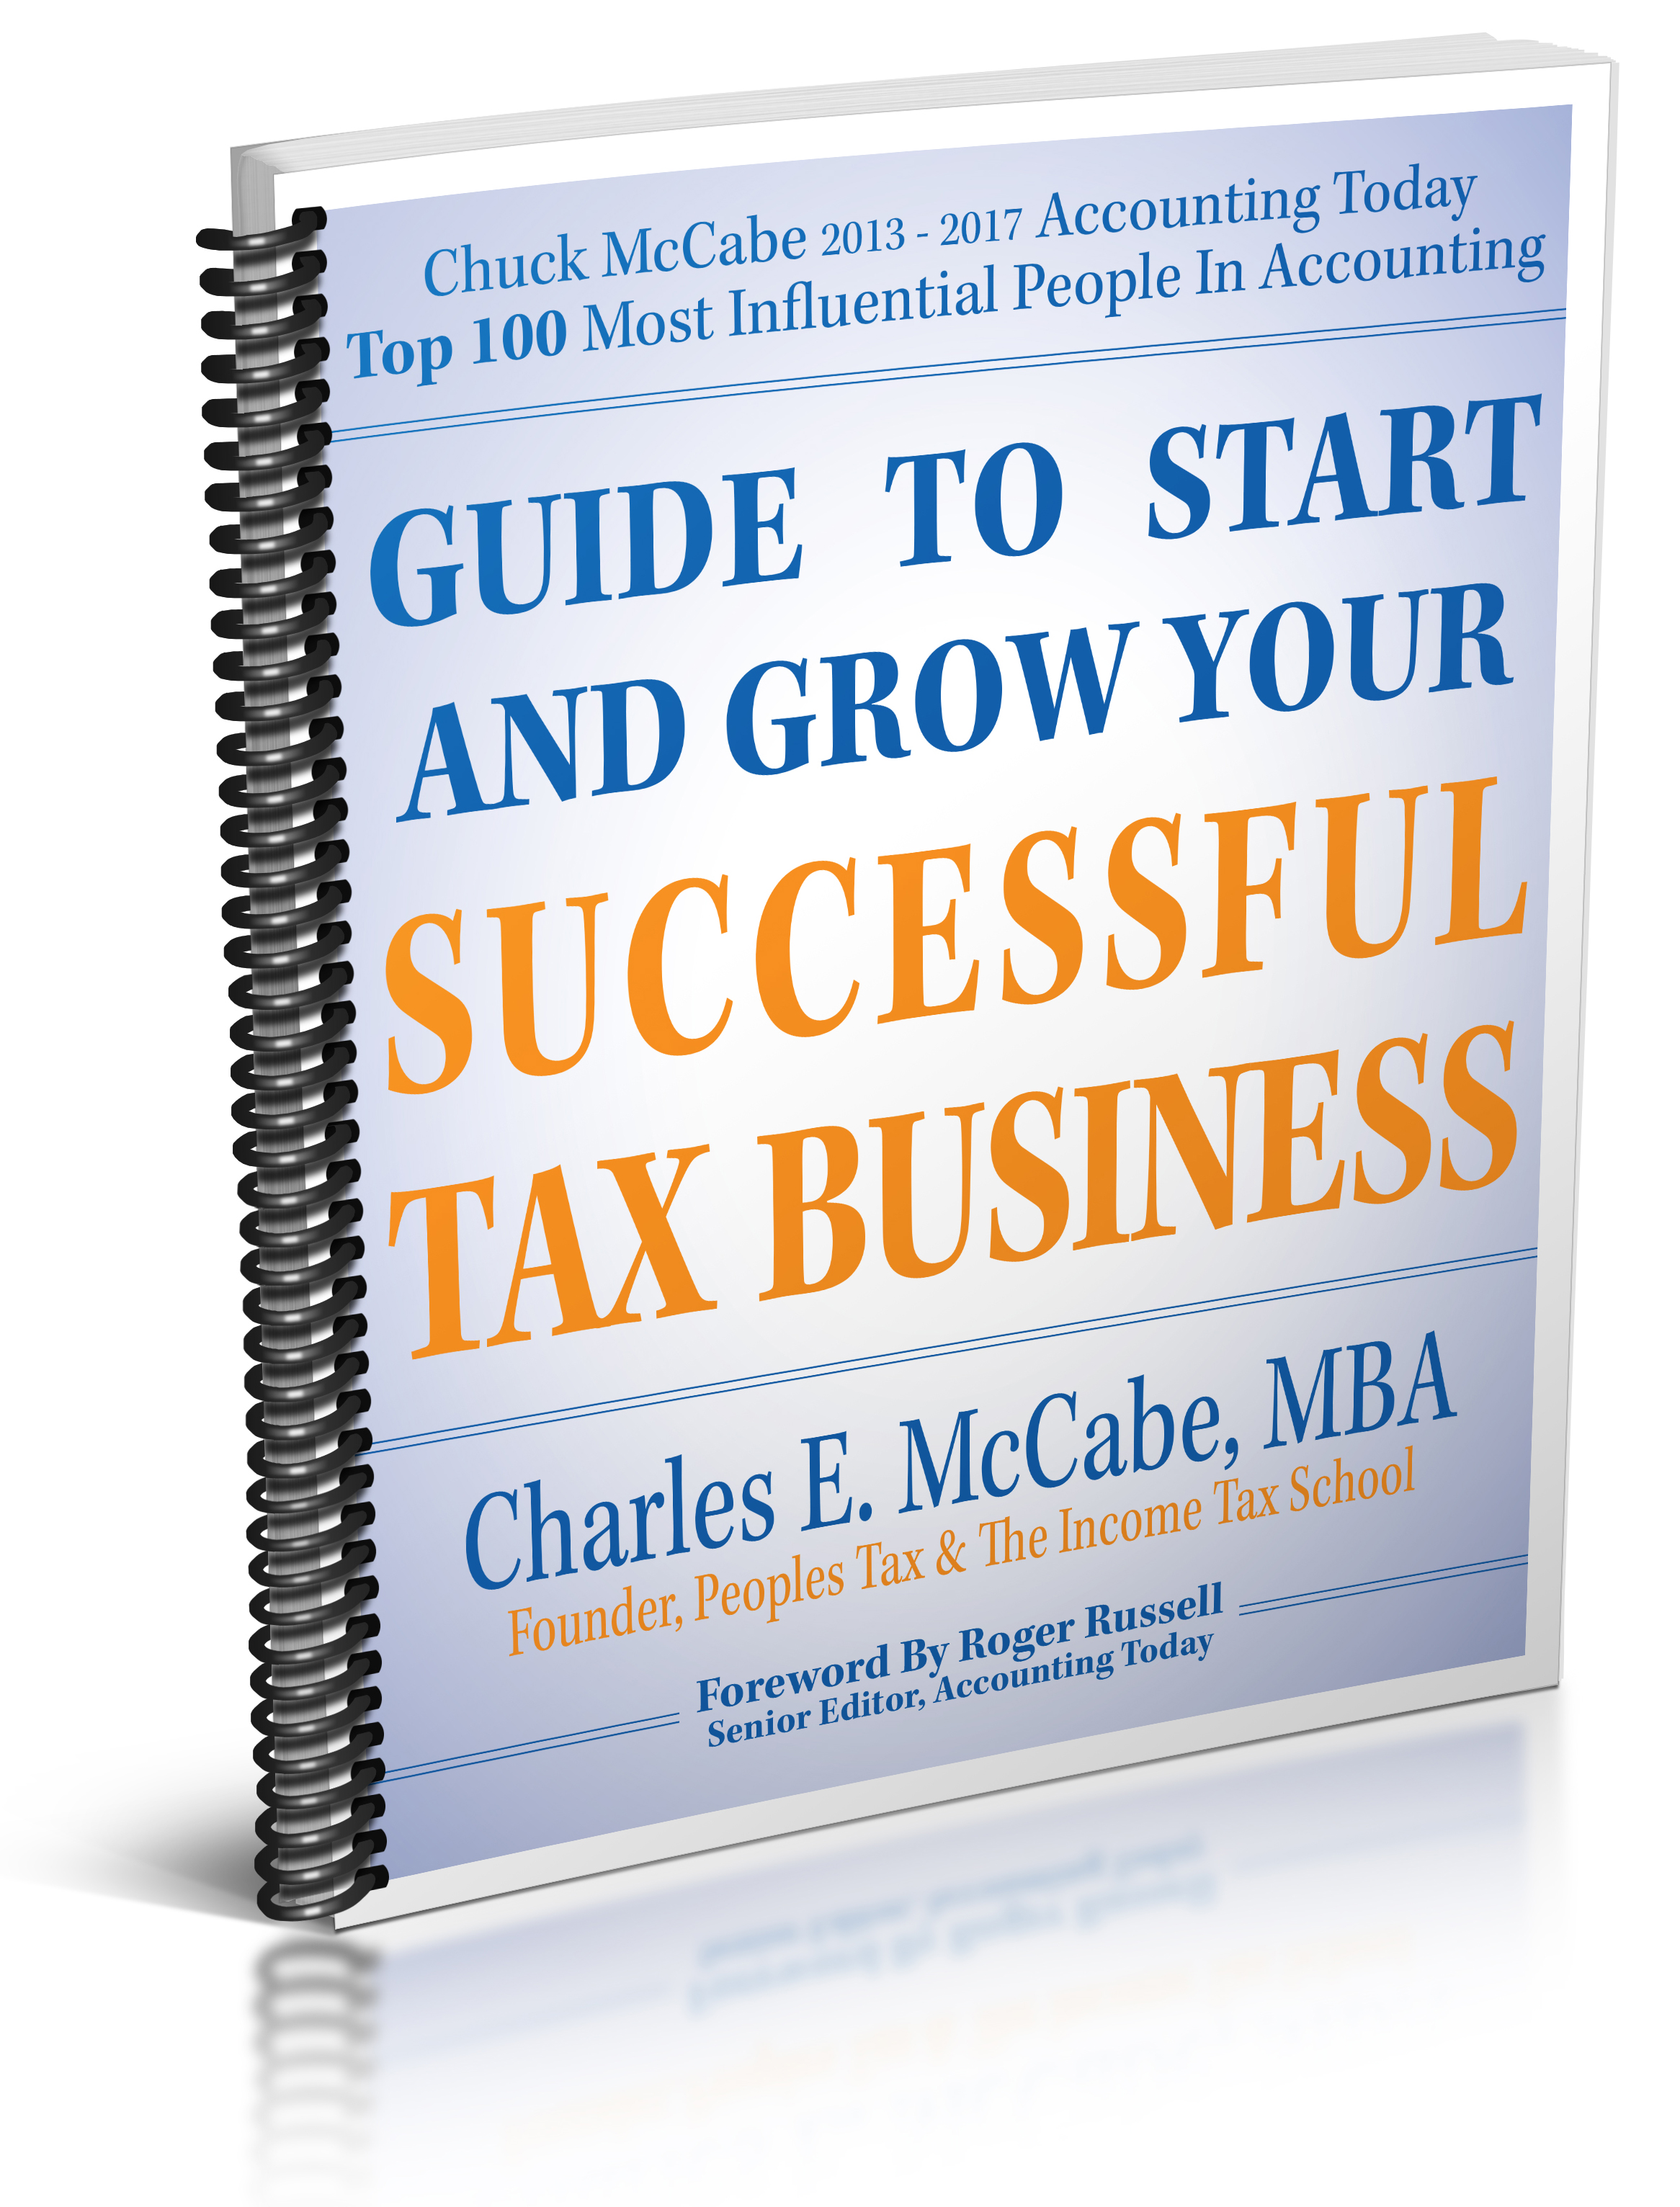 How to start a tax preparation business the income tax school now available falaconquin